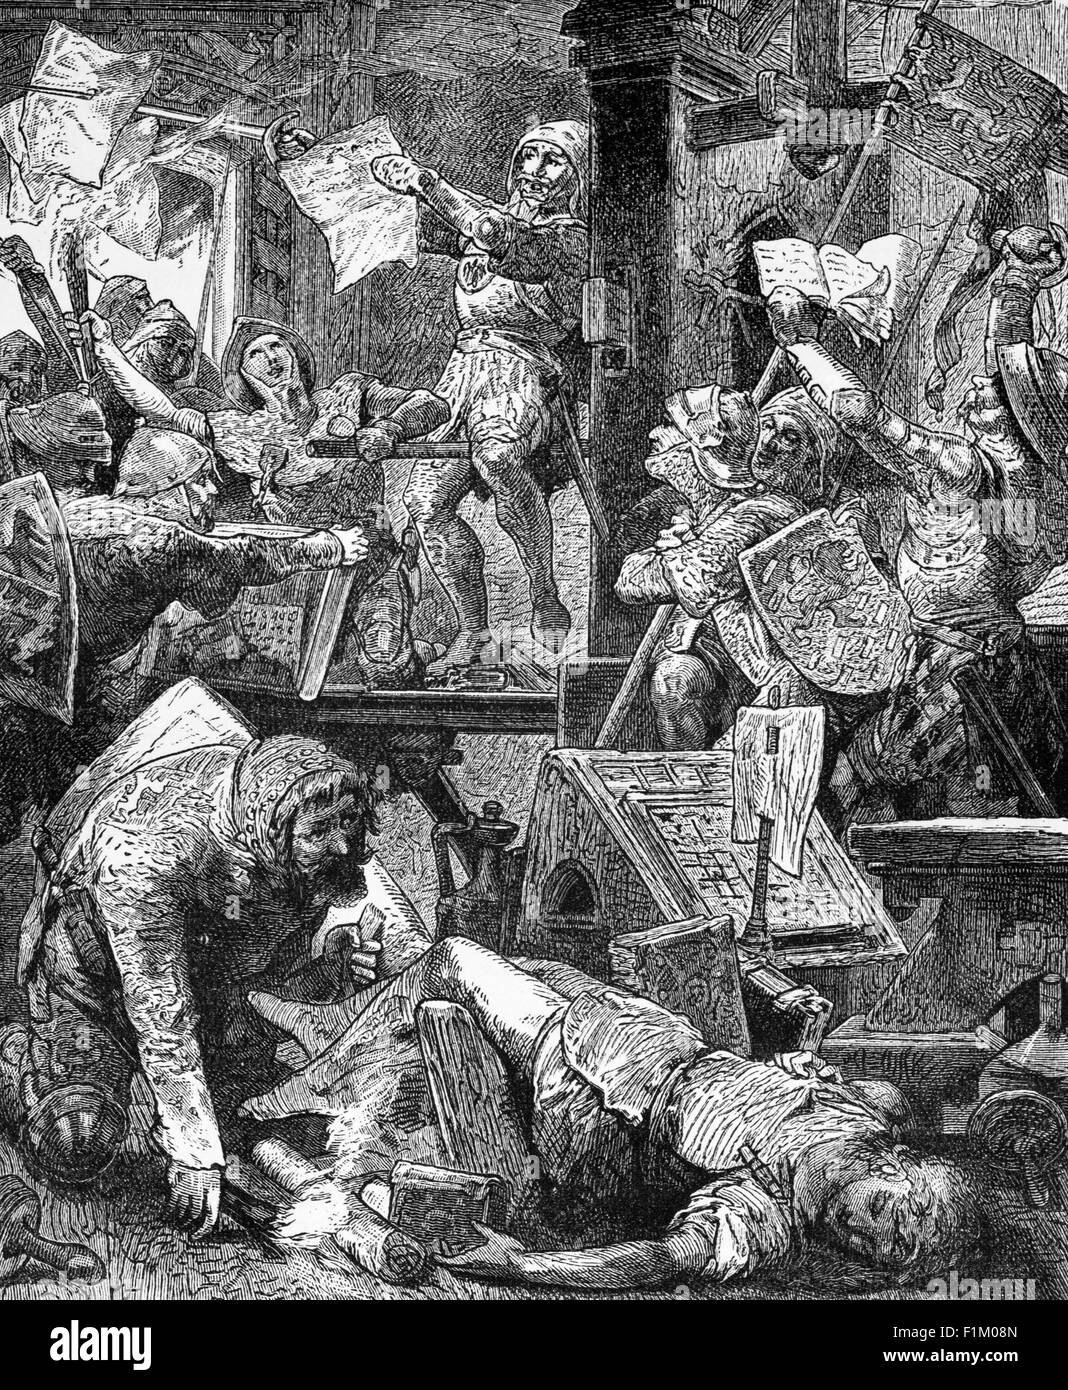 Destruction of printing presses during the Reformation, In 15th Century Germany. - Stock Image